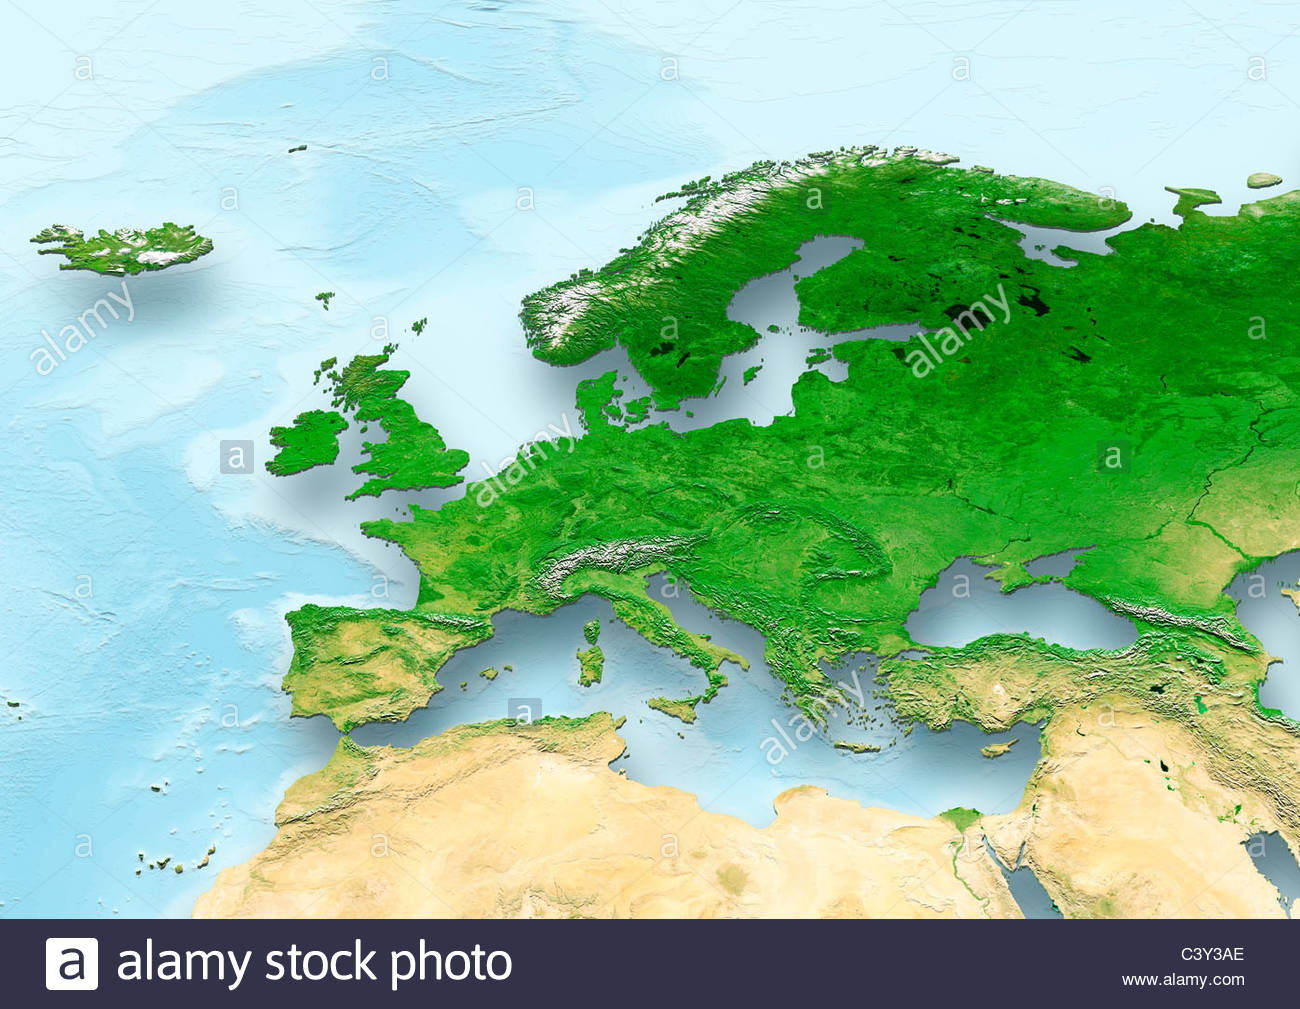 map, Western Europe, political, relief map Stock Photo: 36860054 - Alamy